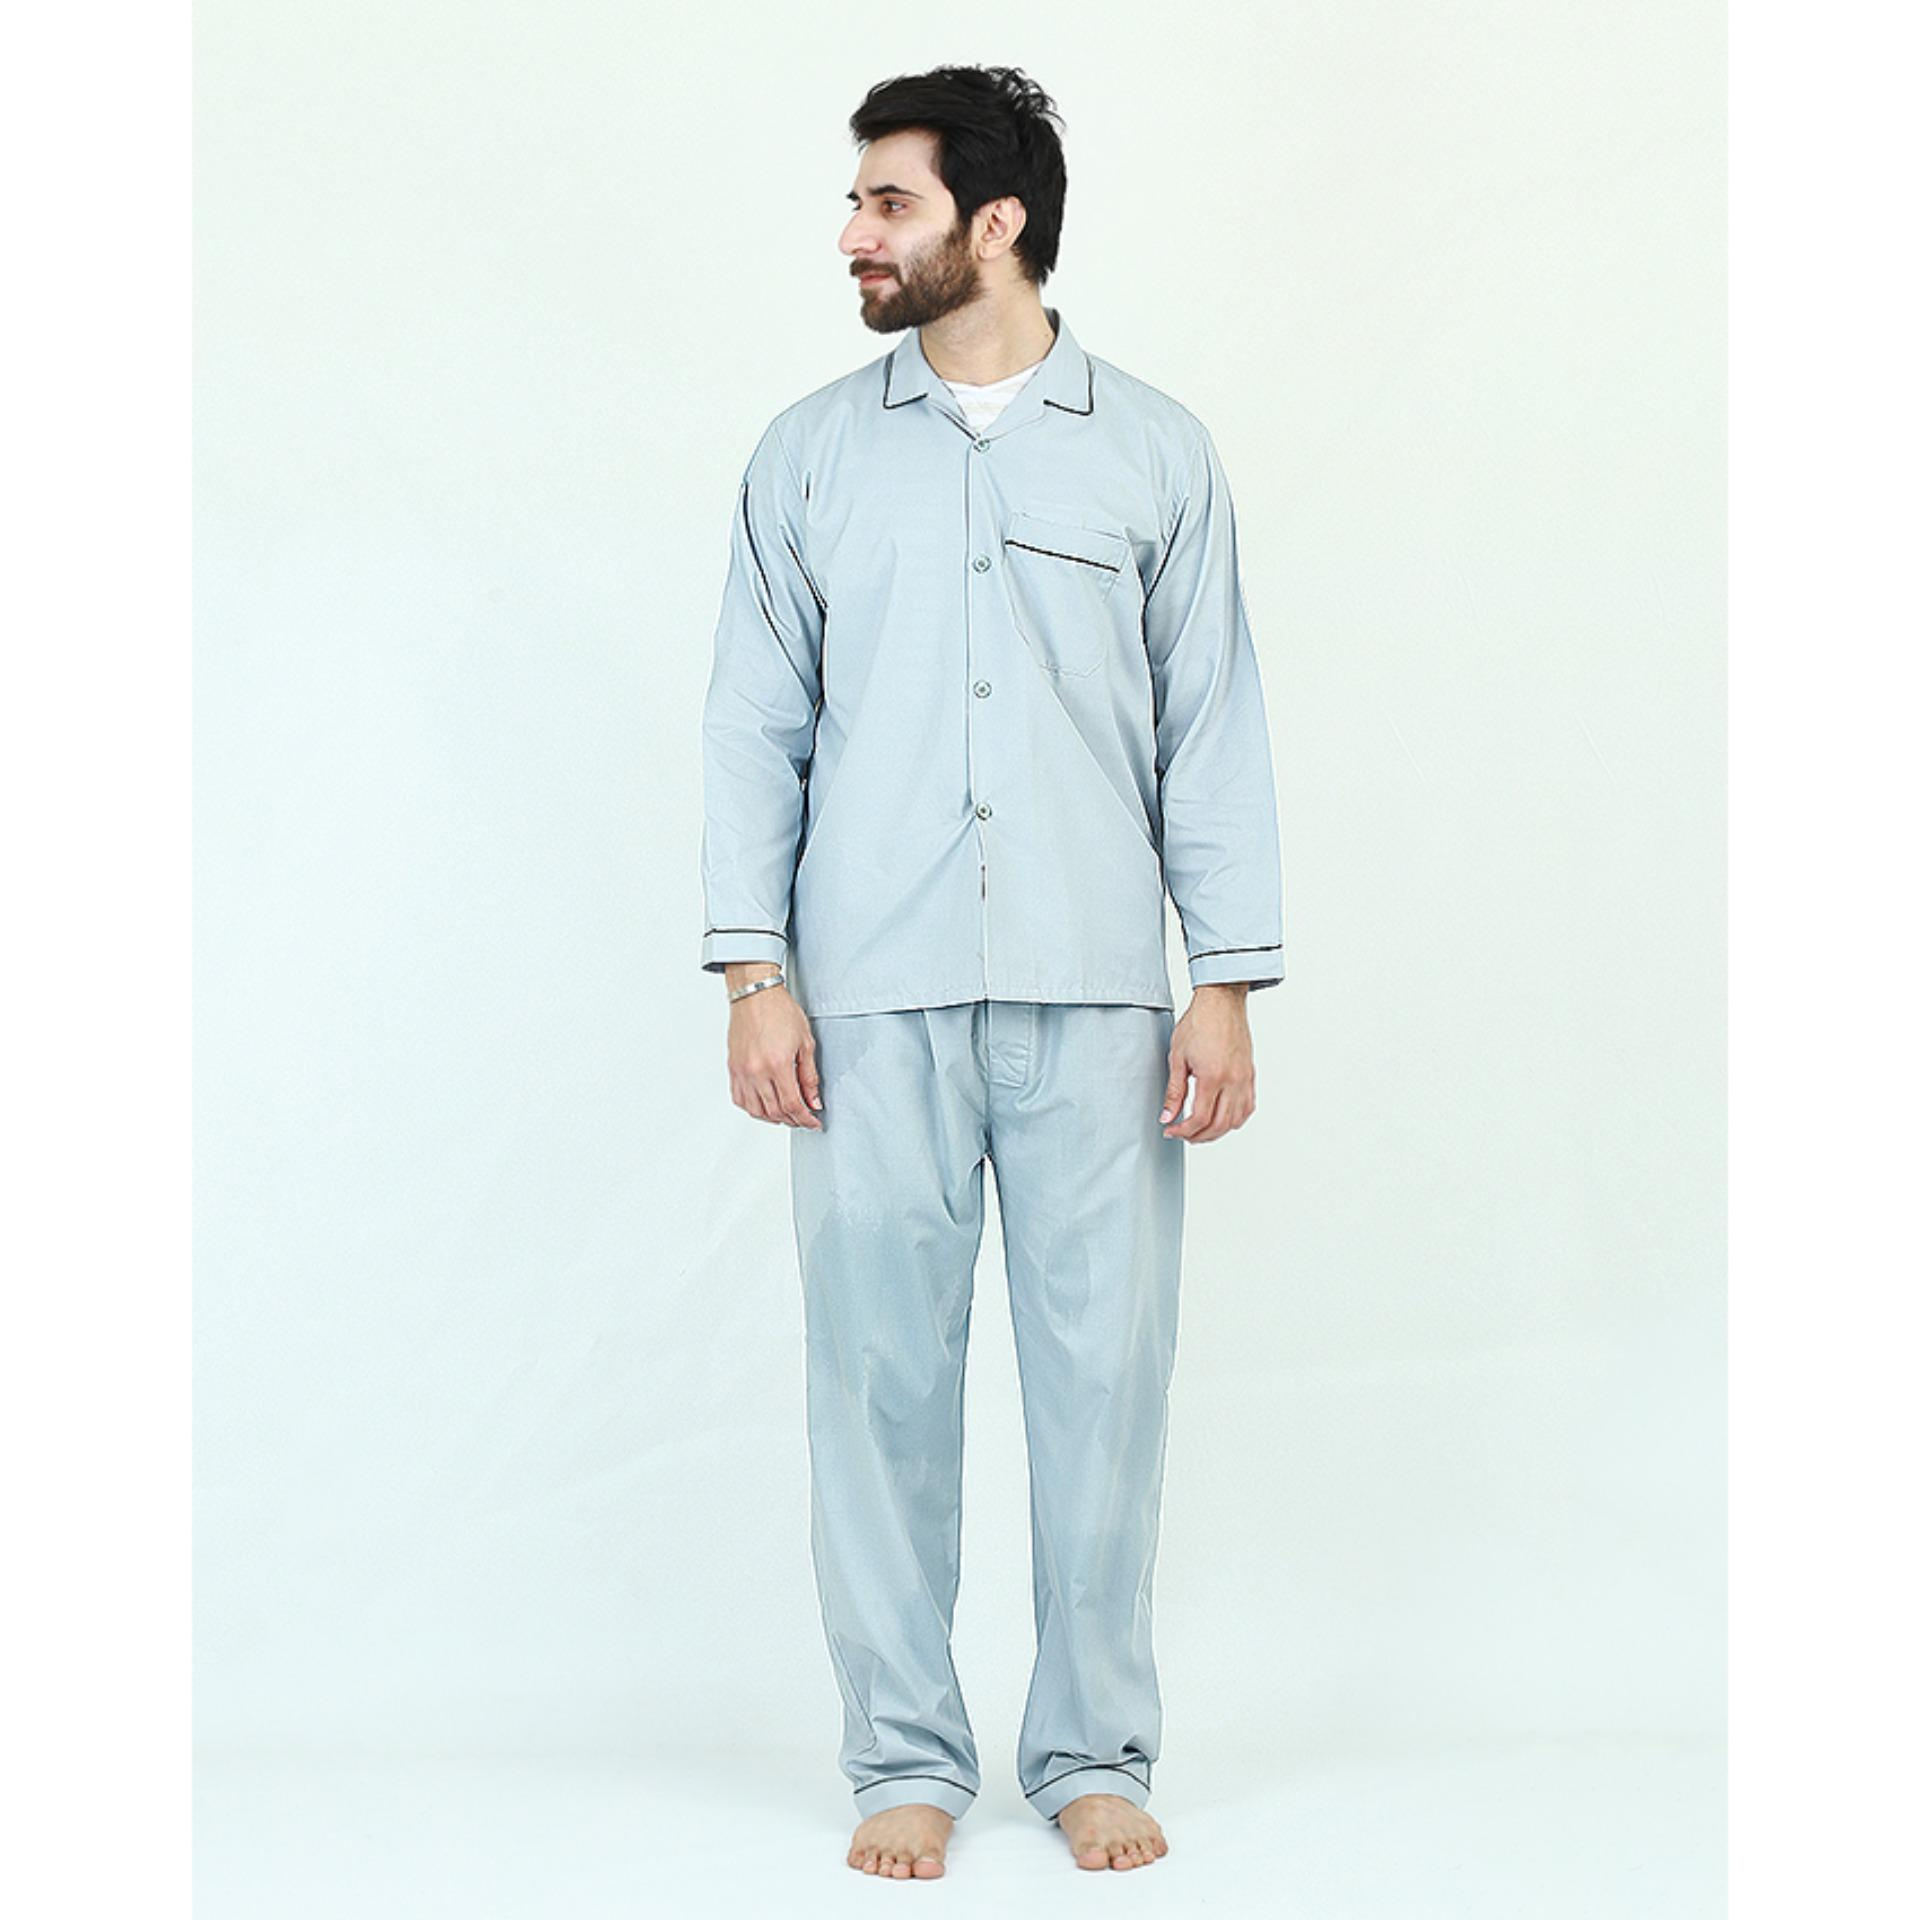 694e7f68a9fc Pack of 2 Cotton Polyester Night Suit (Pajama + Shirt) for Men - Green